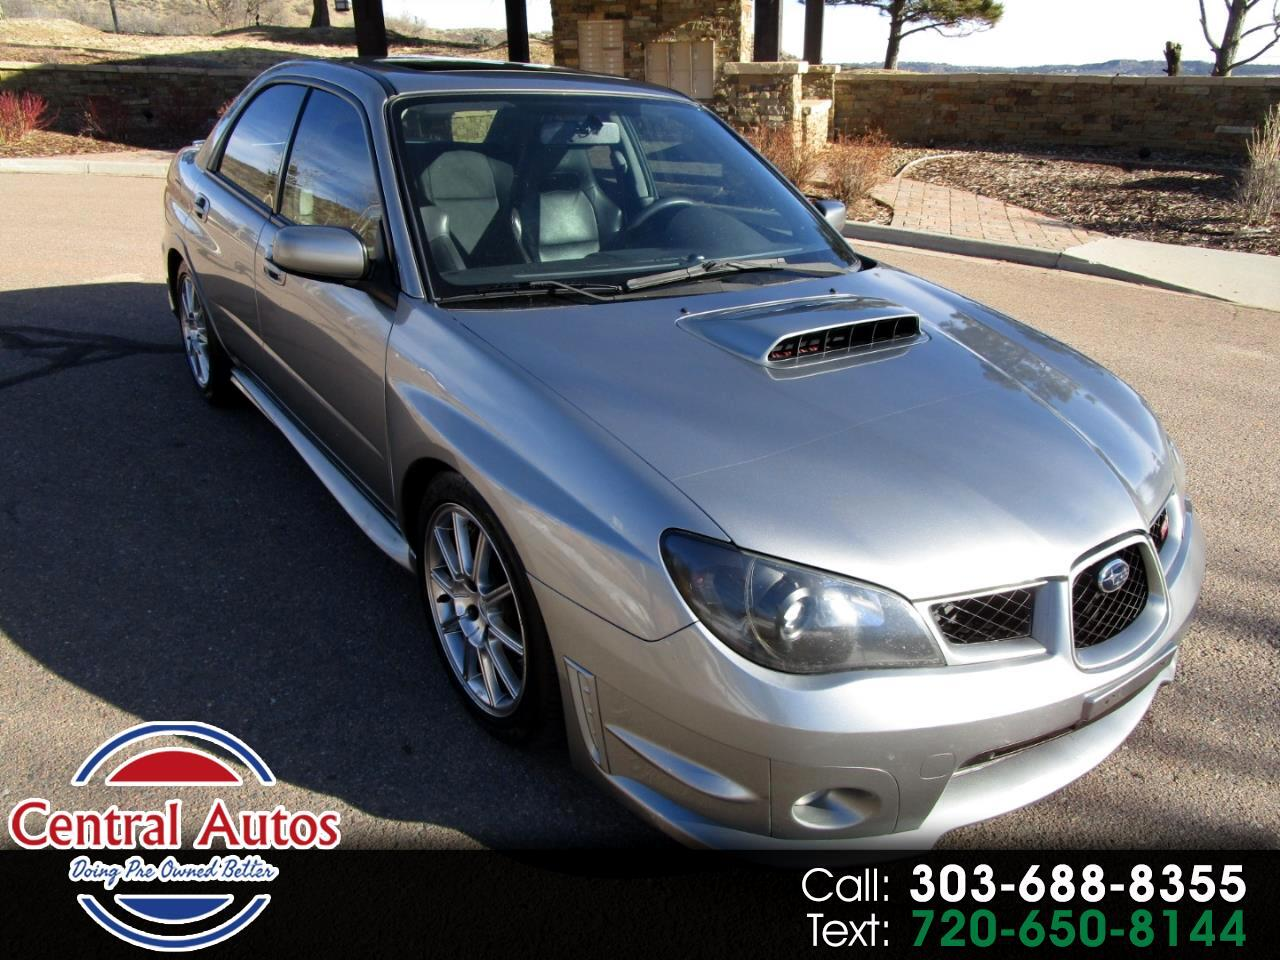 2007 Subaru Impreza Sedan 4dr H4 Turbo WRX STI Ltd